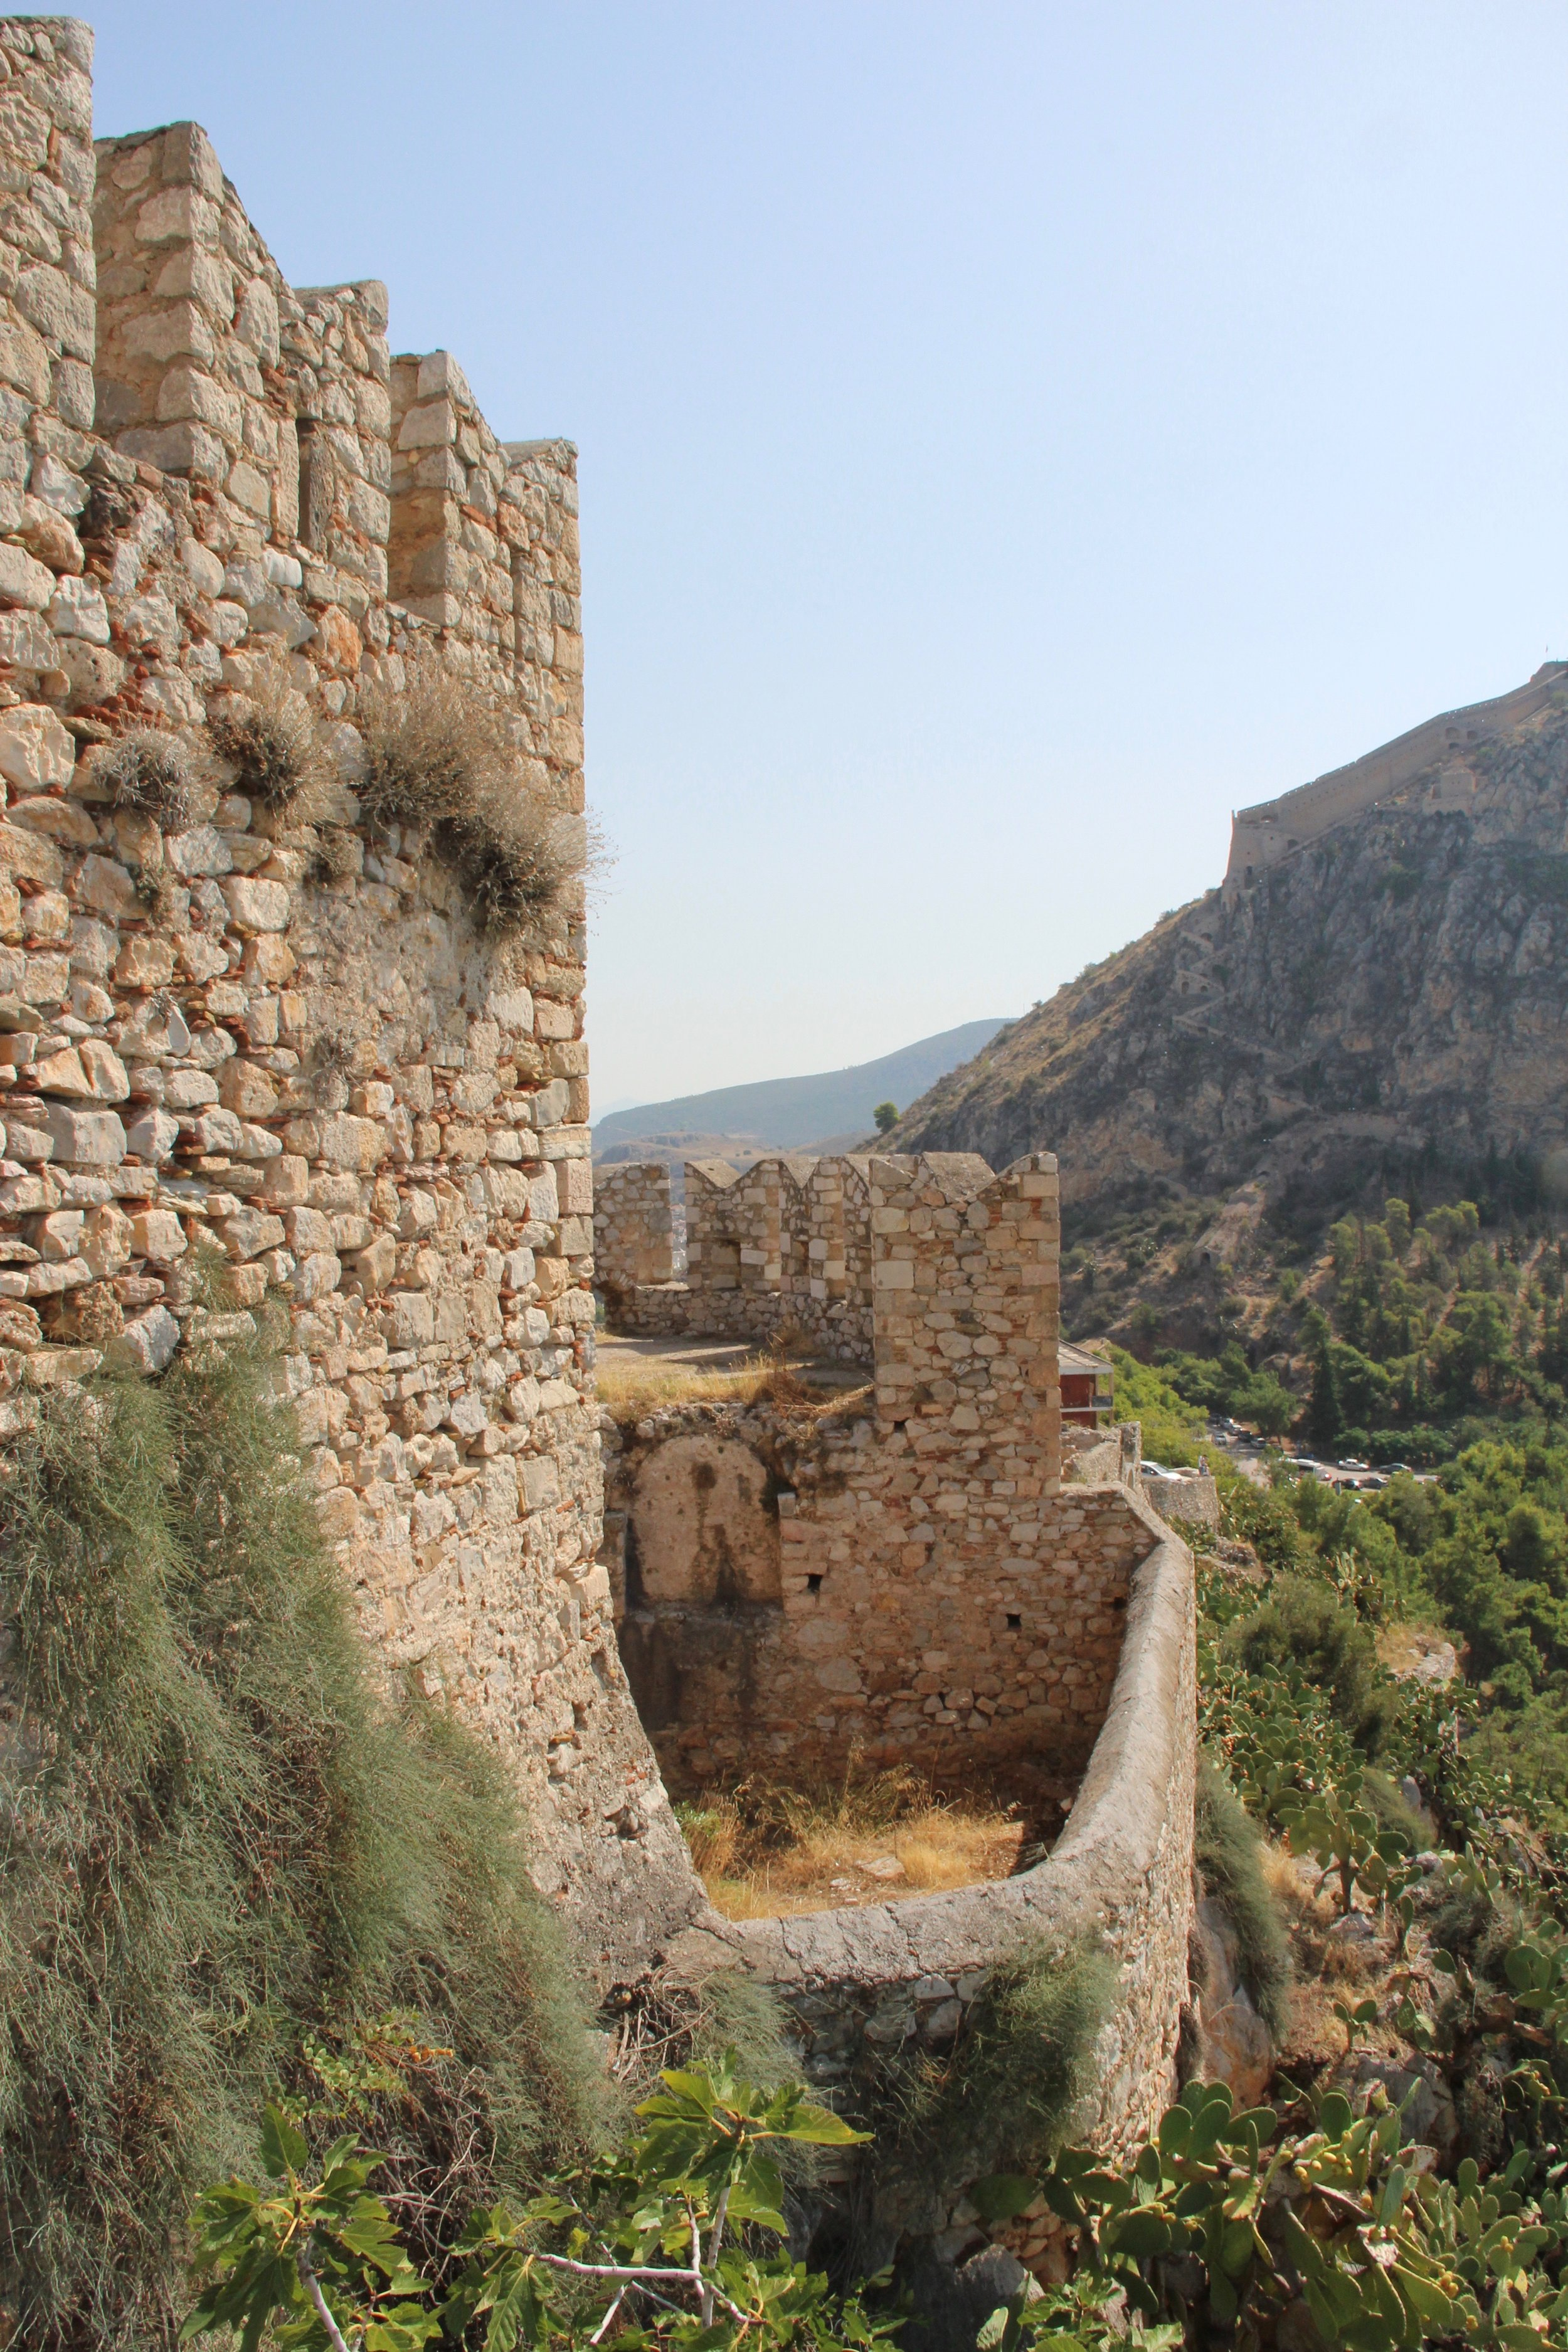 From a Crusader castle, looking up to the lowest part of a Venetian and Ottoman castle